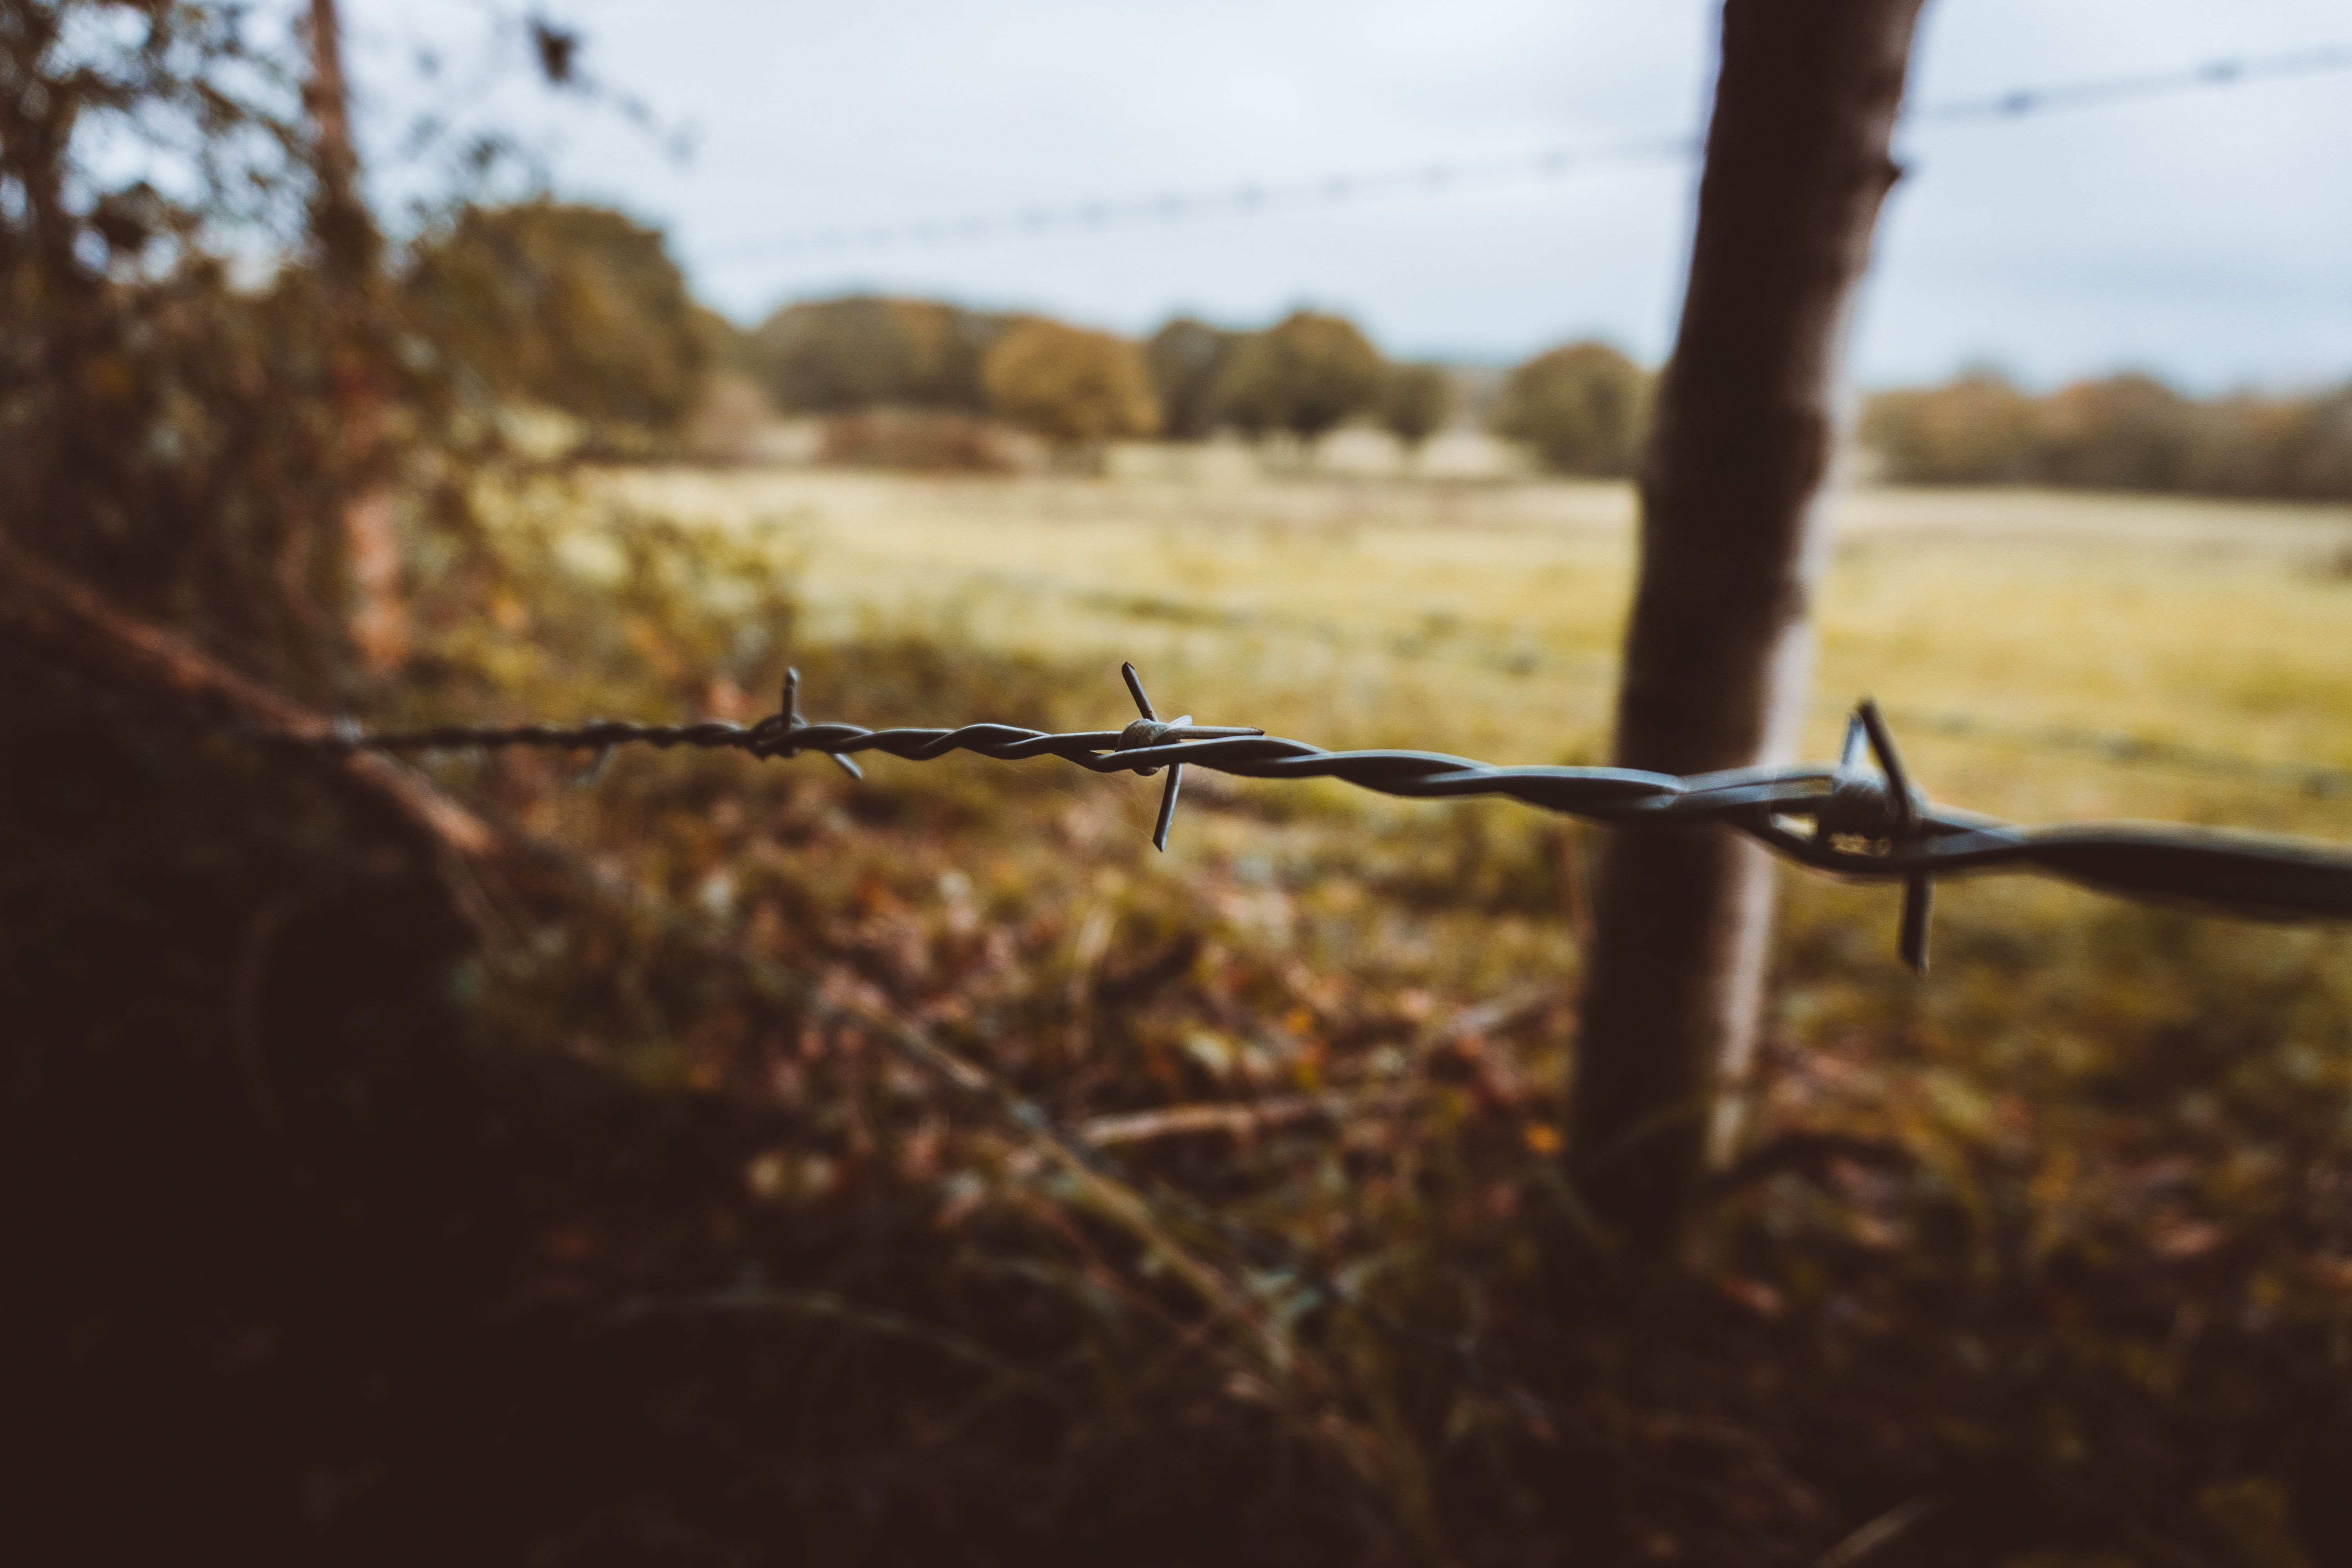 selective focus photography of barbwire fence